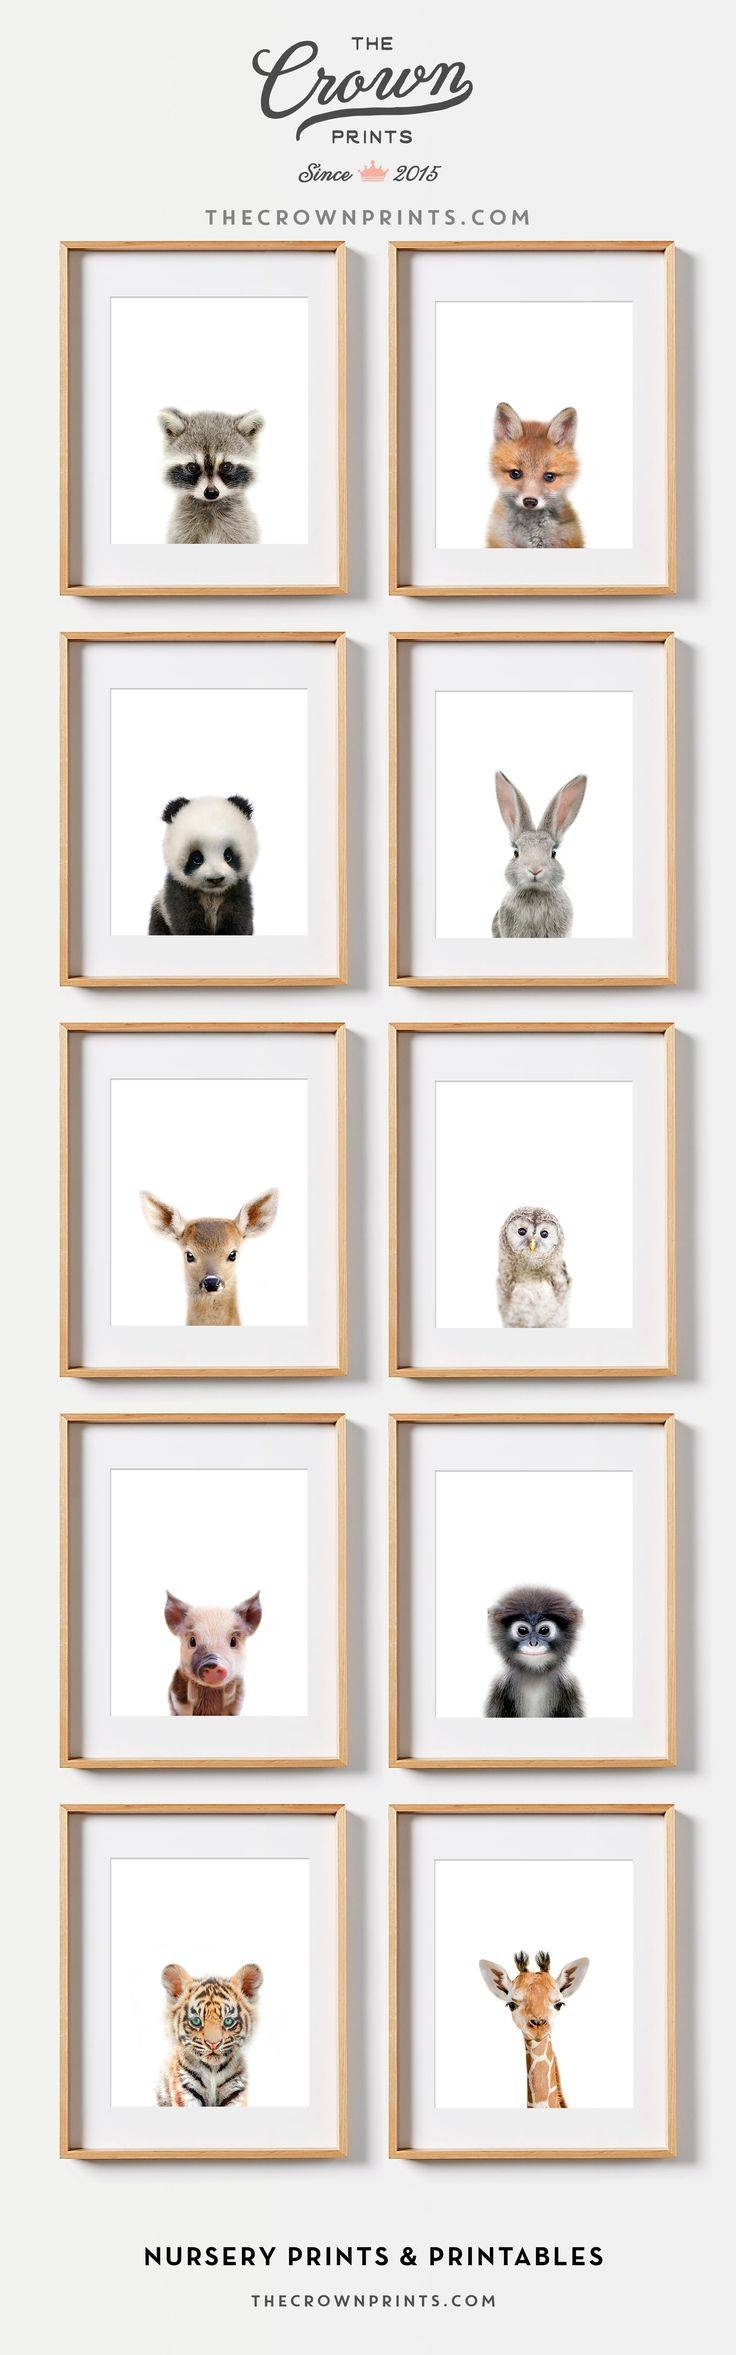 Best 25+ Baby Animal Nursery Ideas On Pinterest | Animal Nursery Within Recent Baby Animal Wall Art (View 5 of 20)